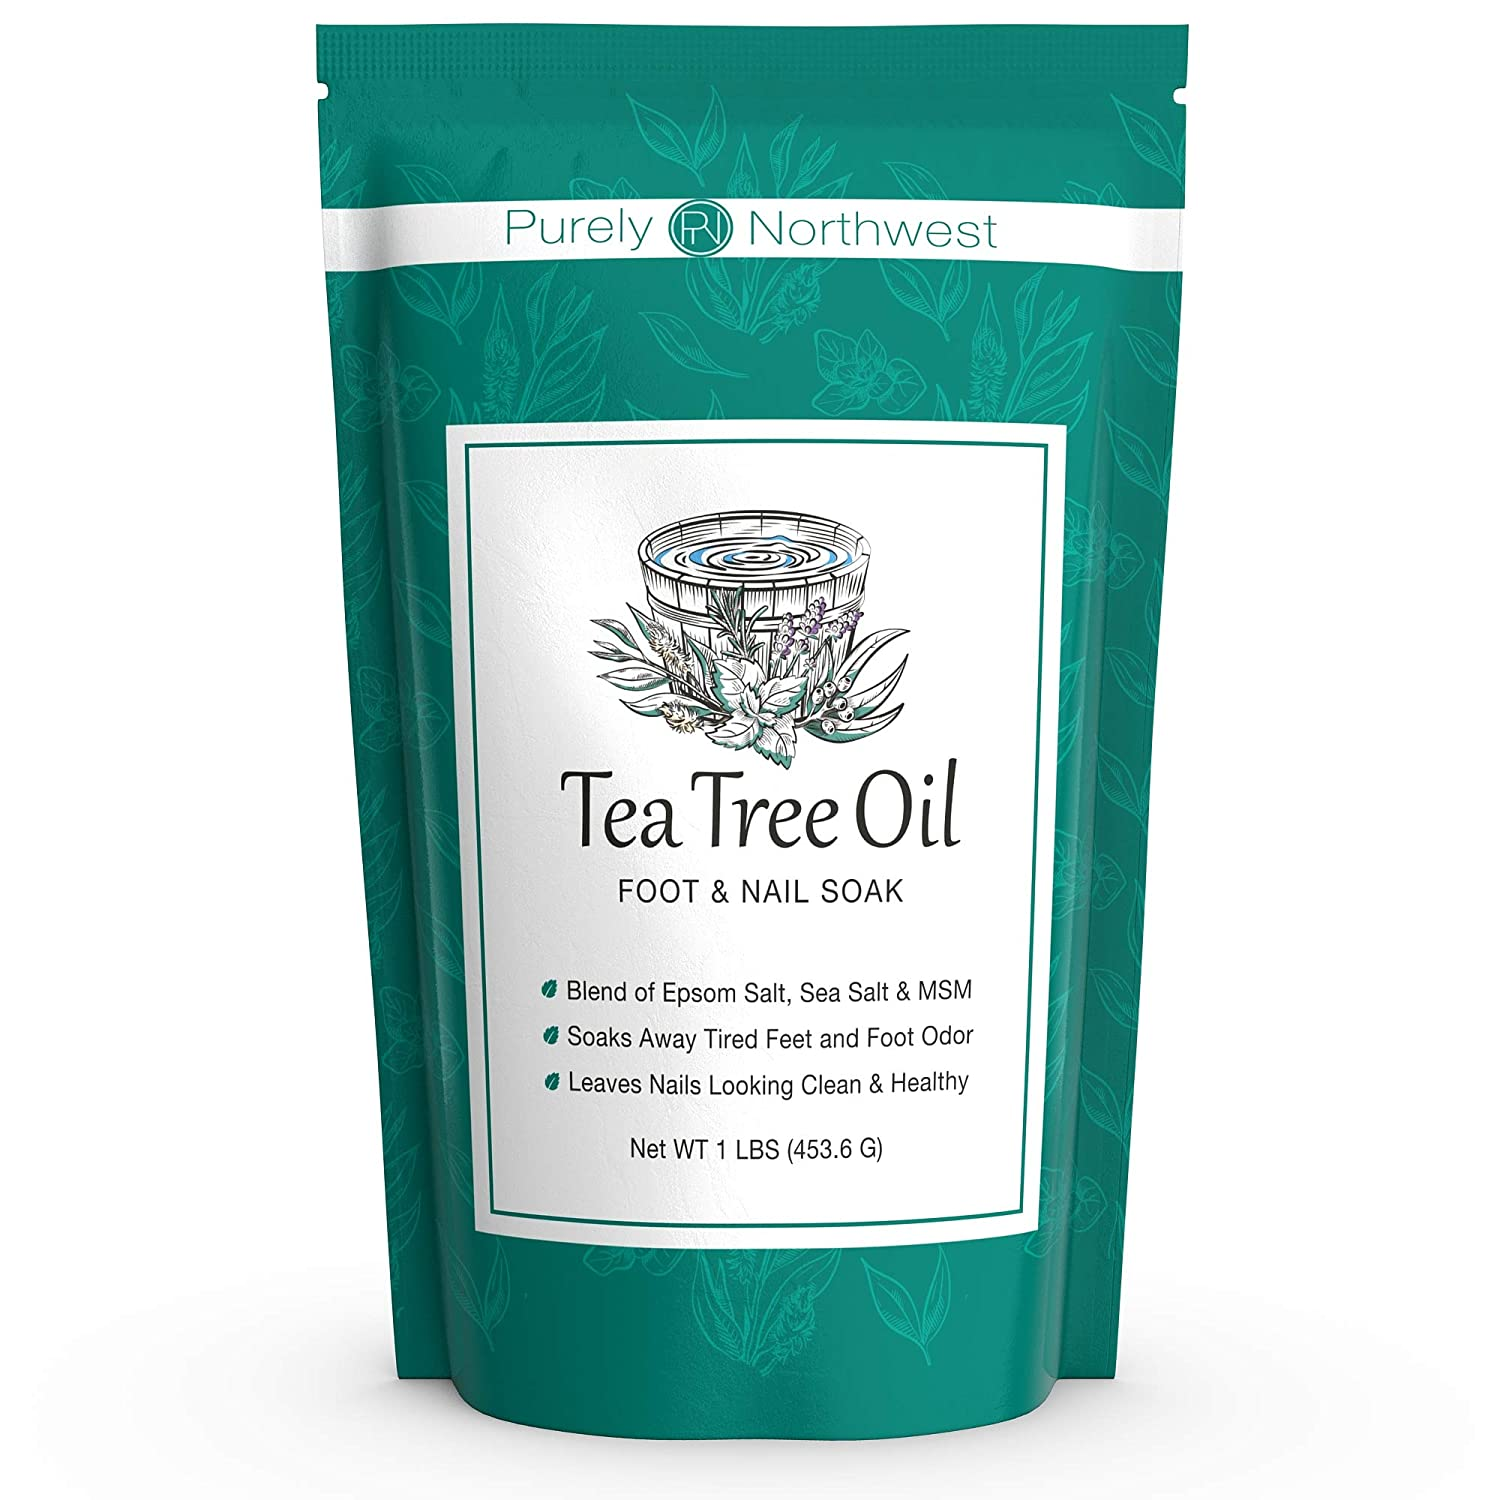 Image result for Tea Tree Oil Foot Soak with Epsom Salt